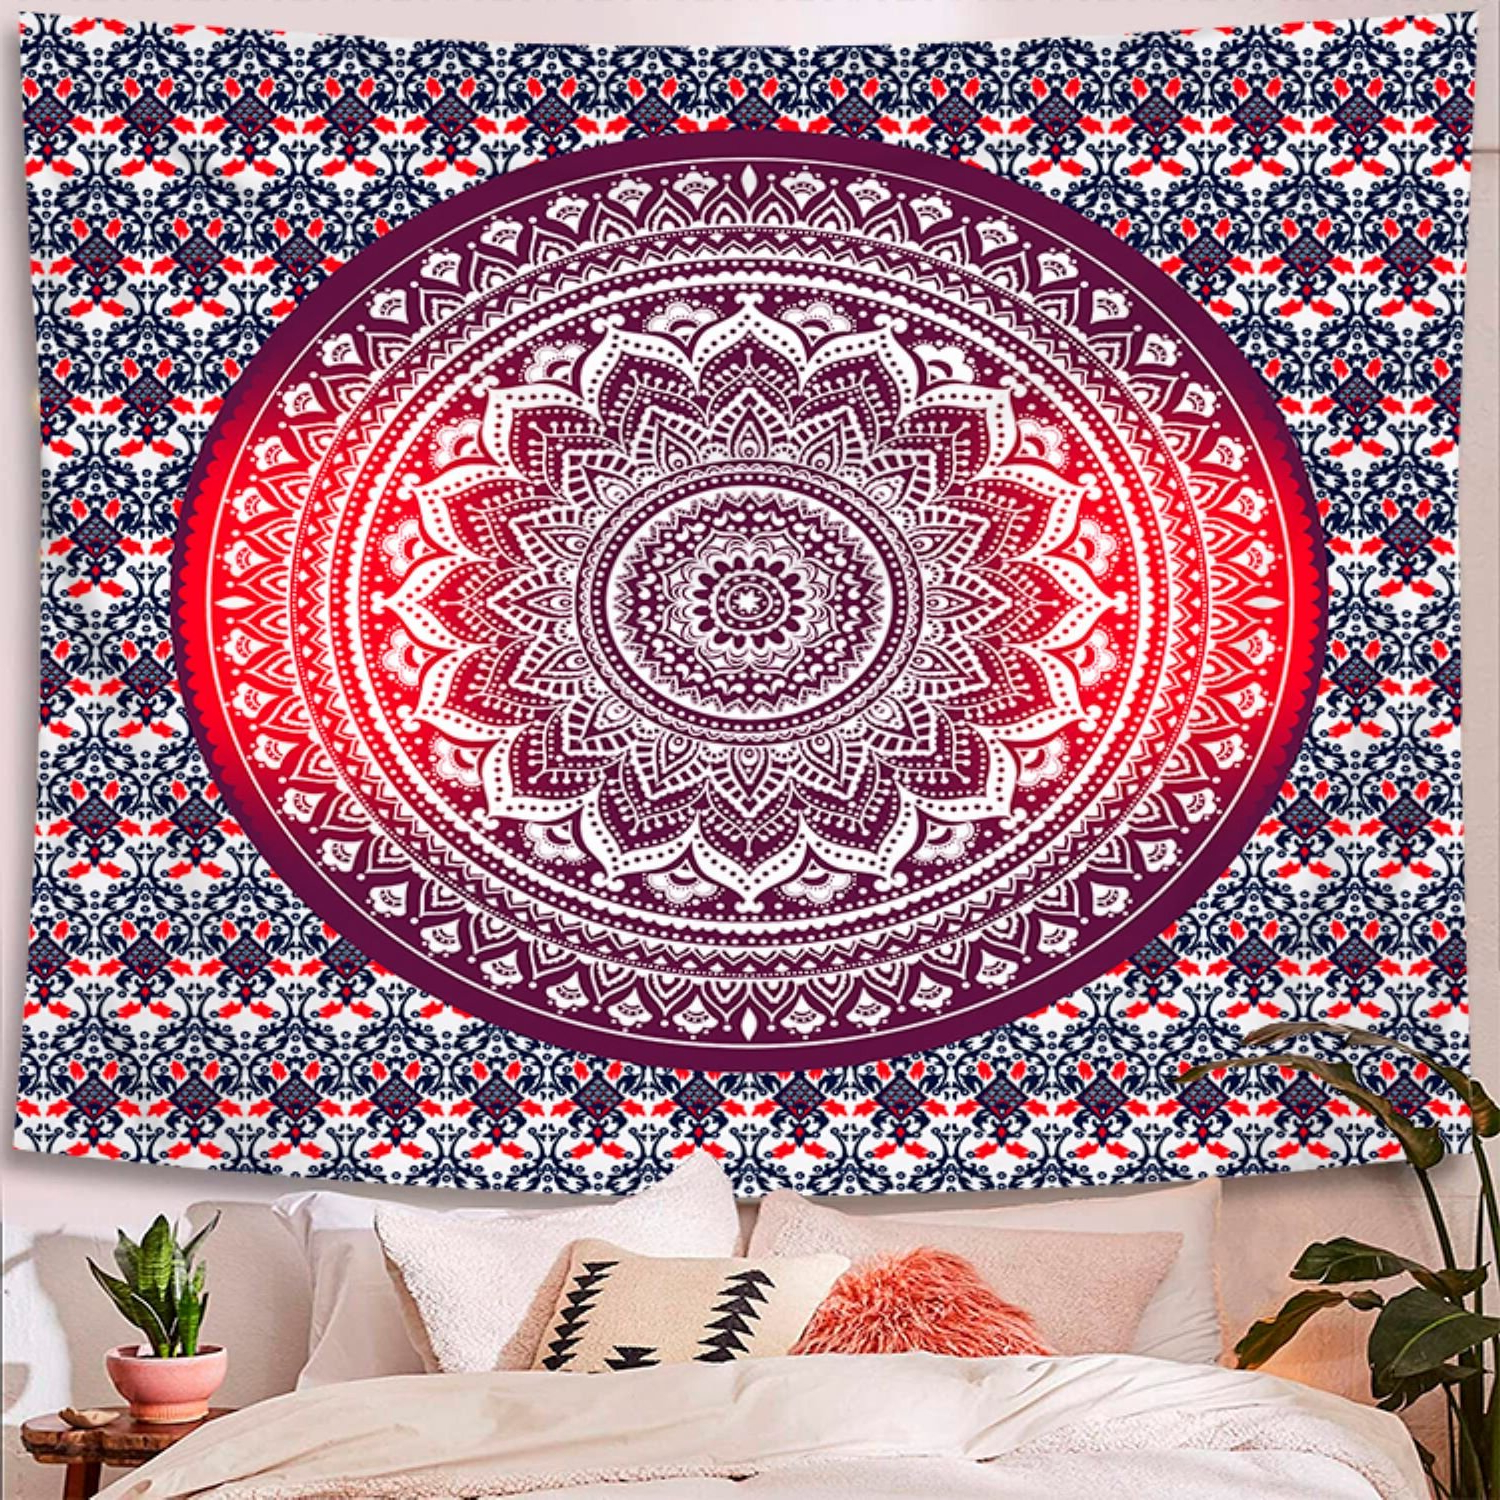 Widely Used Blended Fabric Clancy Wool And Cotton Wall Hangings With Hanging Accessories Included Throughout Indian Hippie Bohemian Psychedelic Peacock Mandala Polyester Tapestry With Hanging Accessories Included (View 6 of 20)